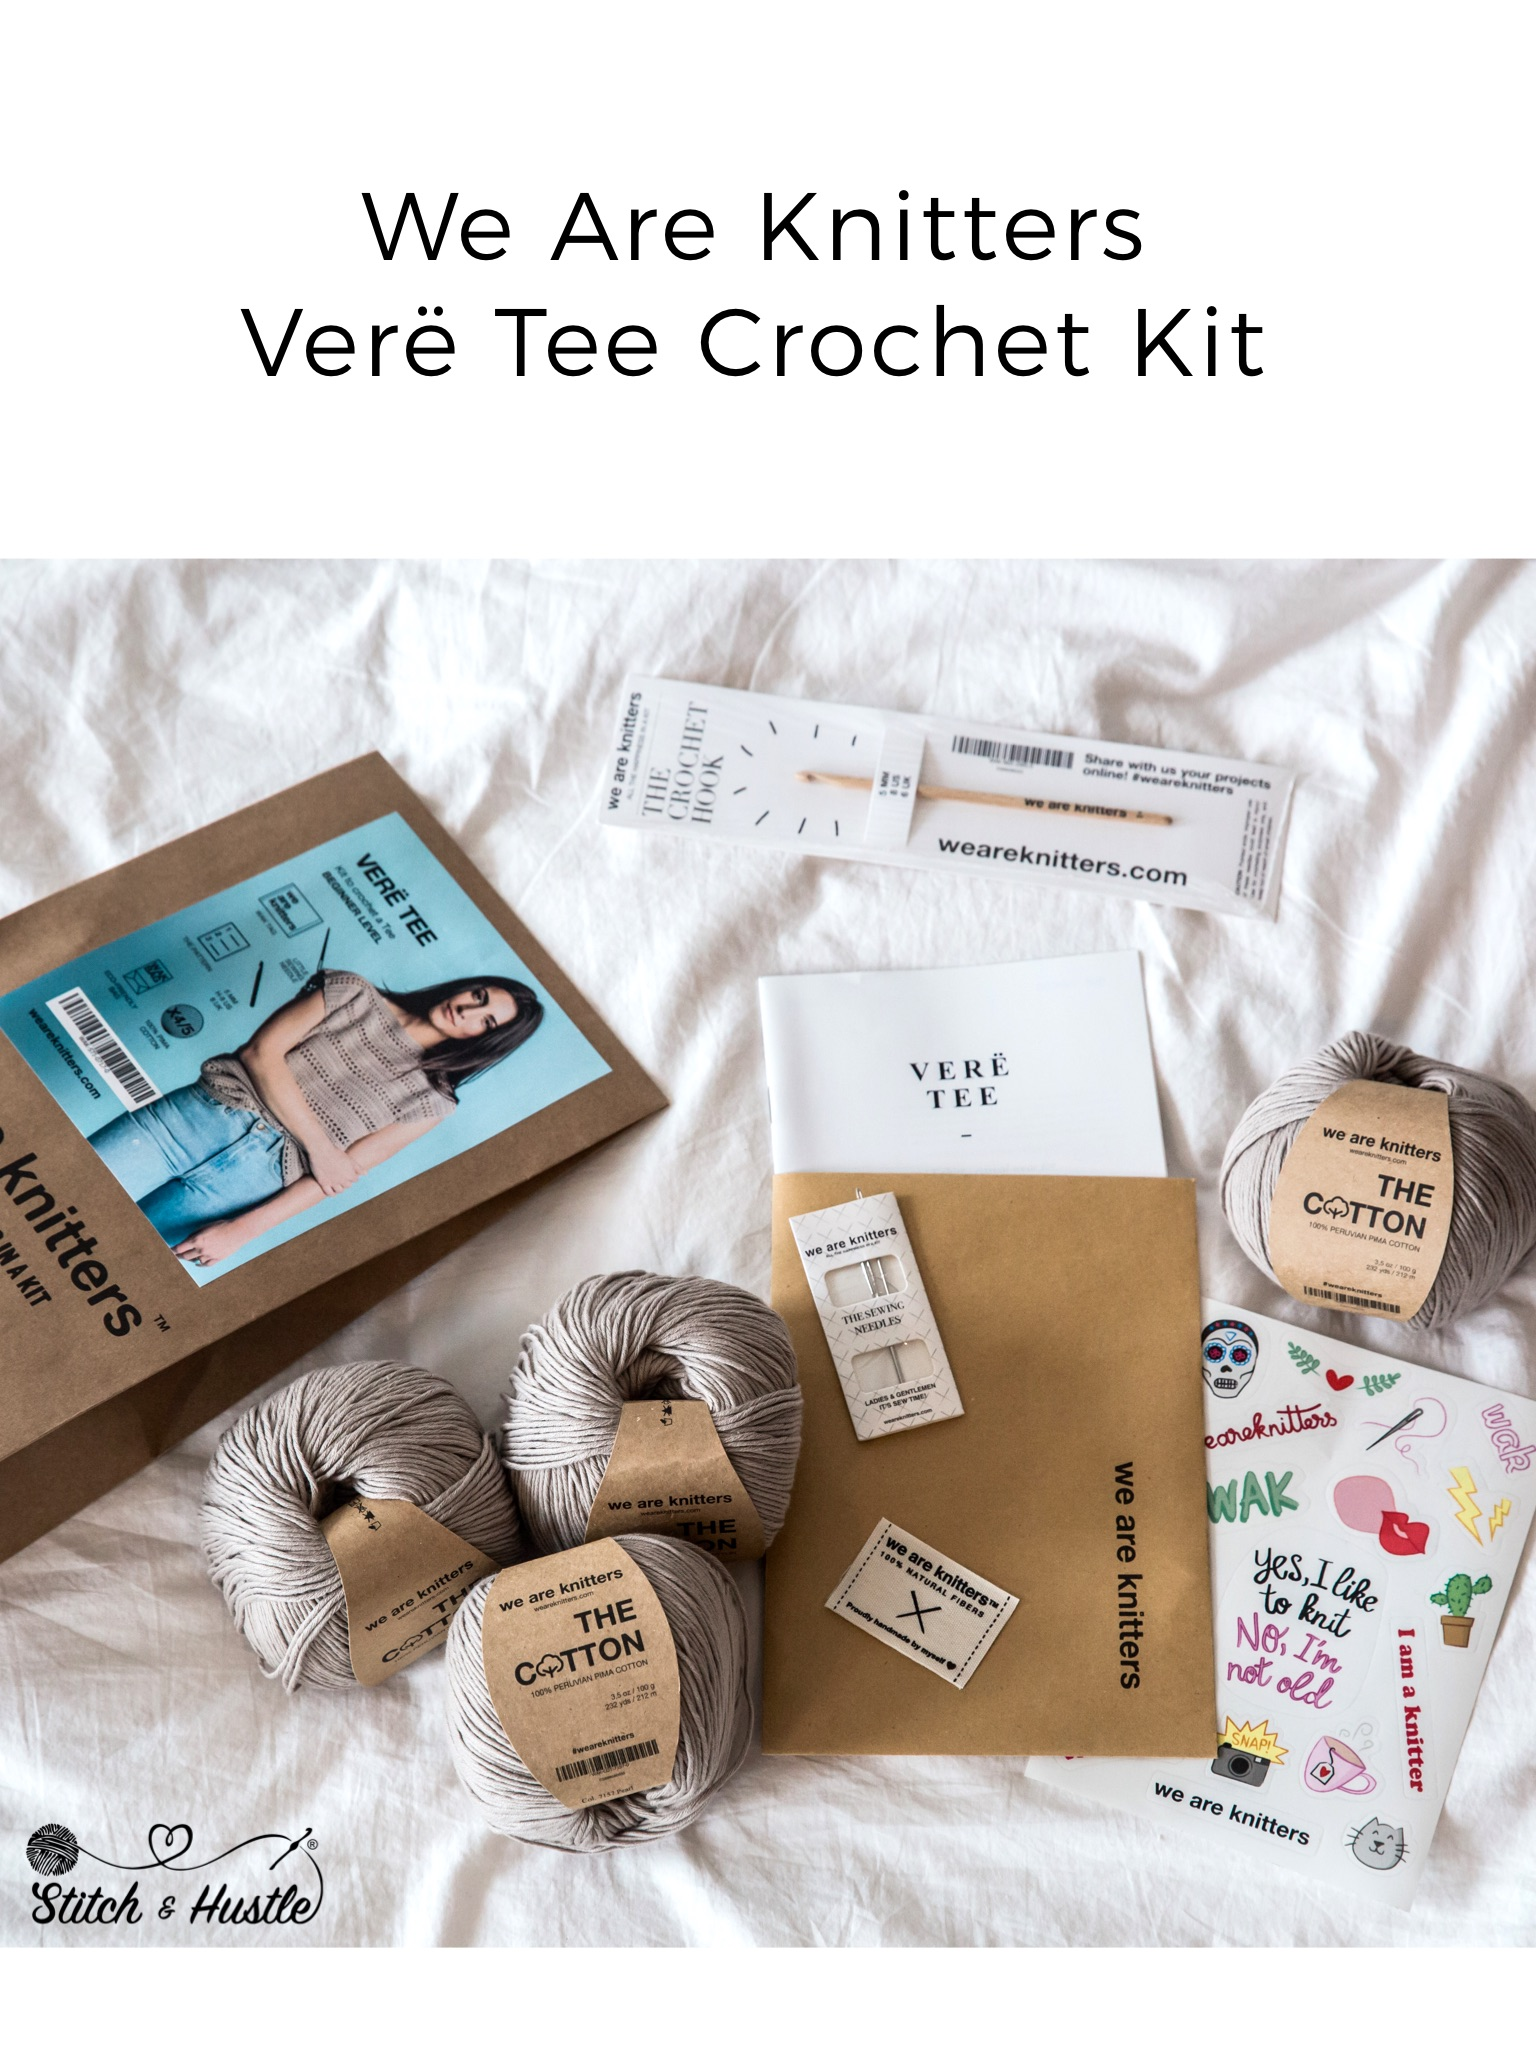 We Are Knitters We Are Knitters Verë Tee Crochet Kit Review Giveaway